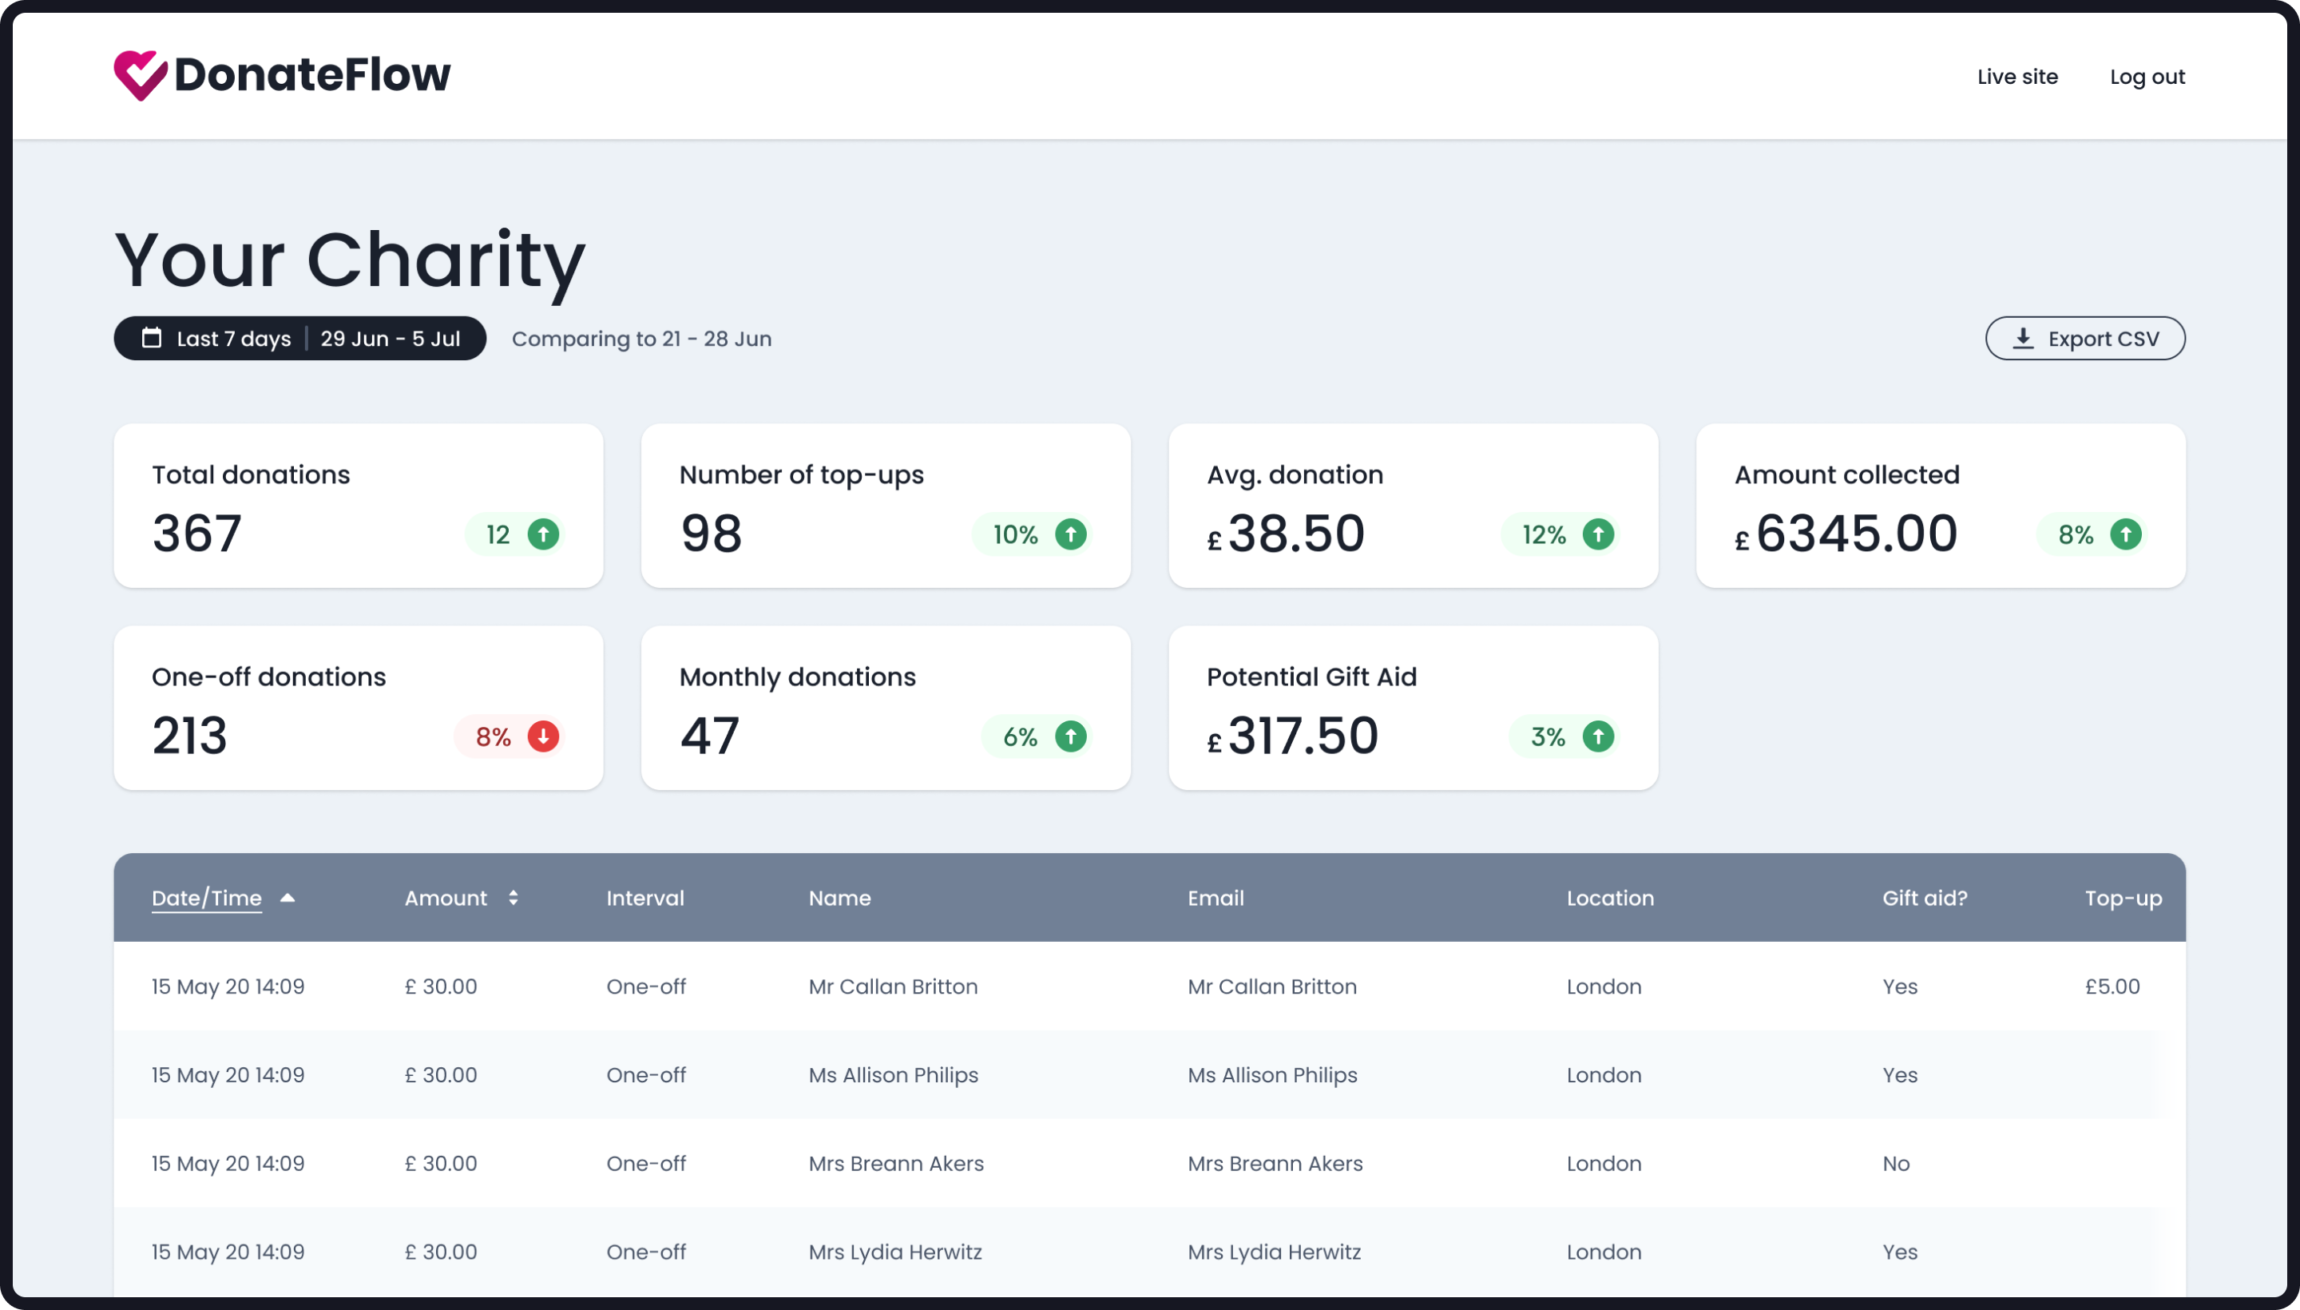 Screenshot of the DonateFlow dashboard showing total donations, average donations, amount collected and so on